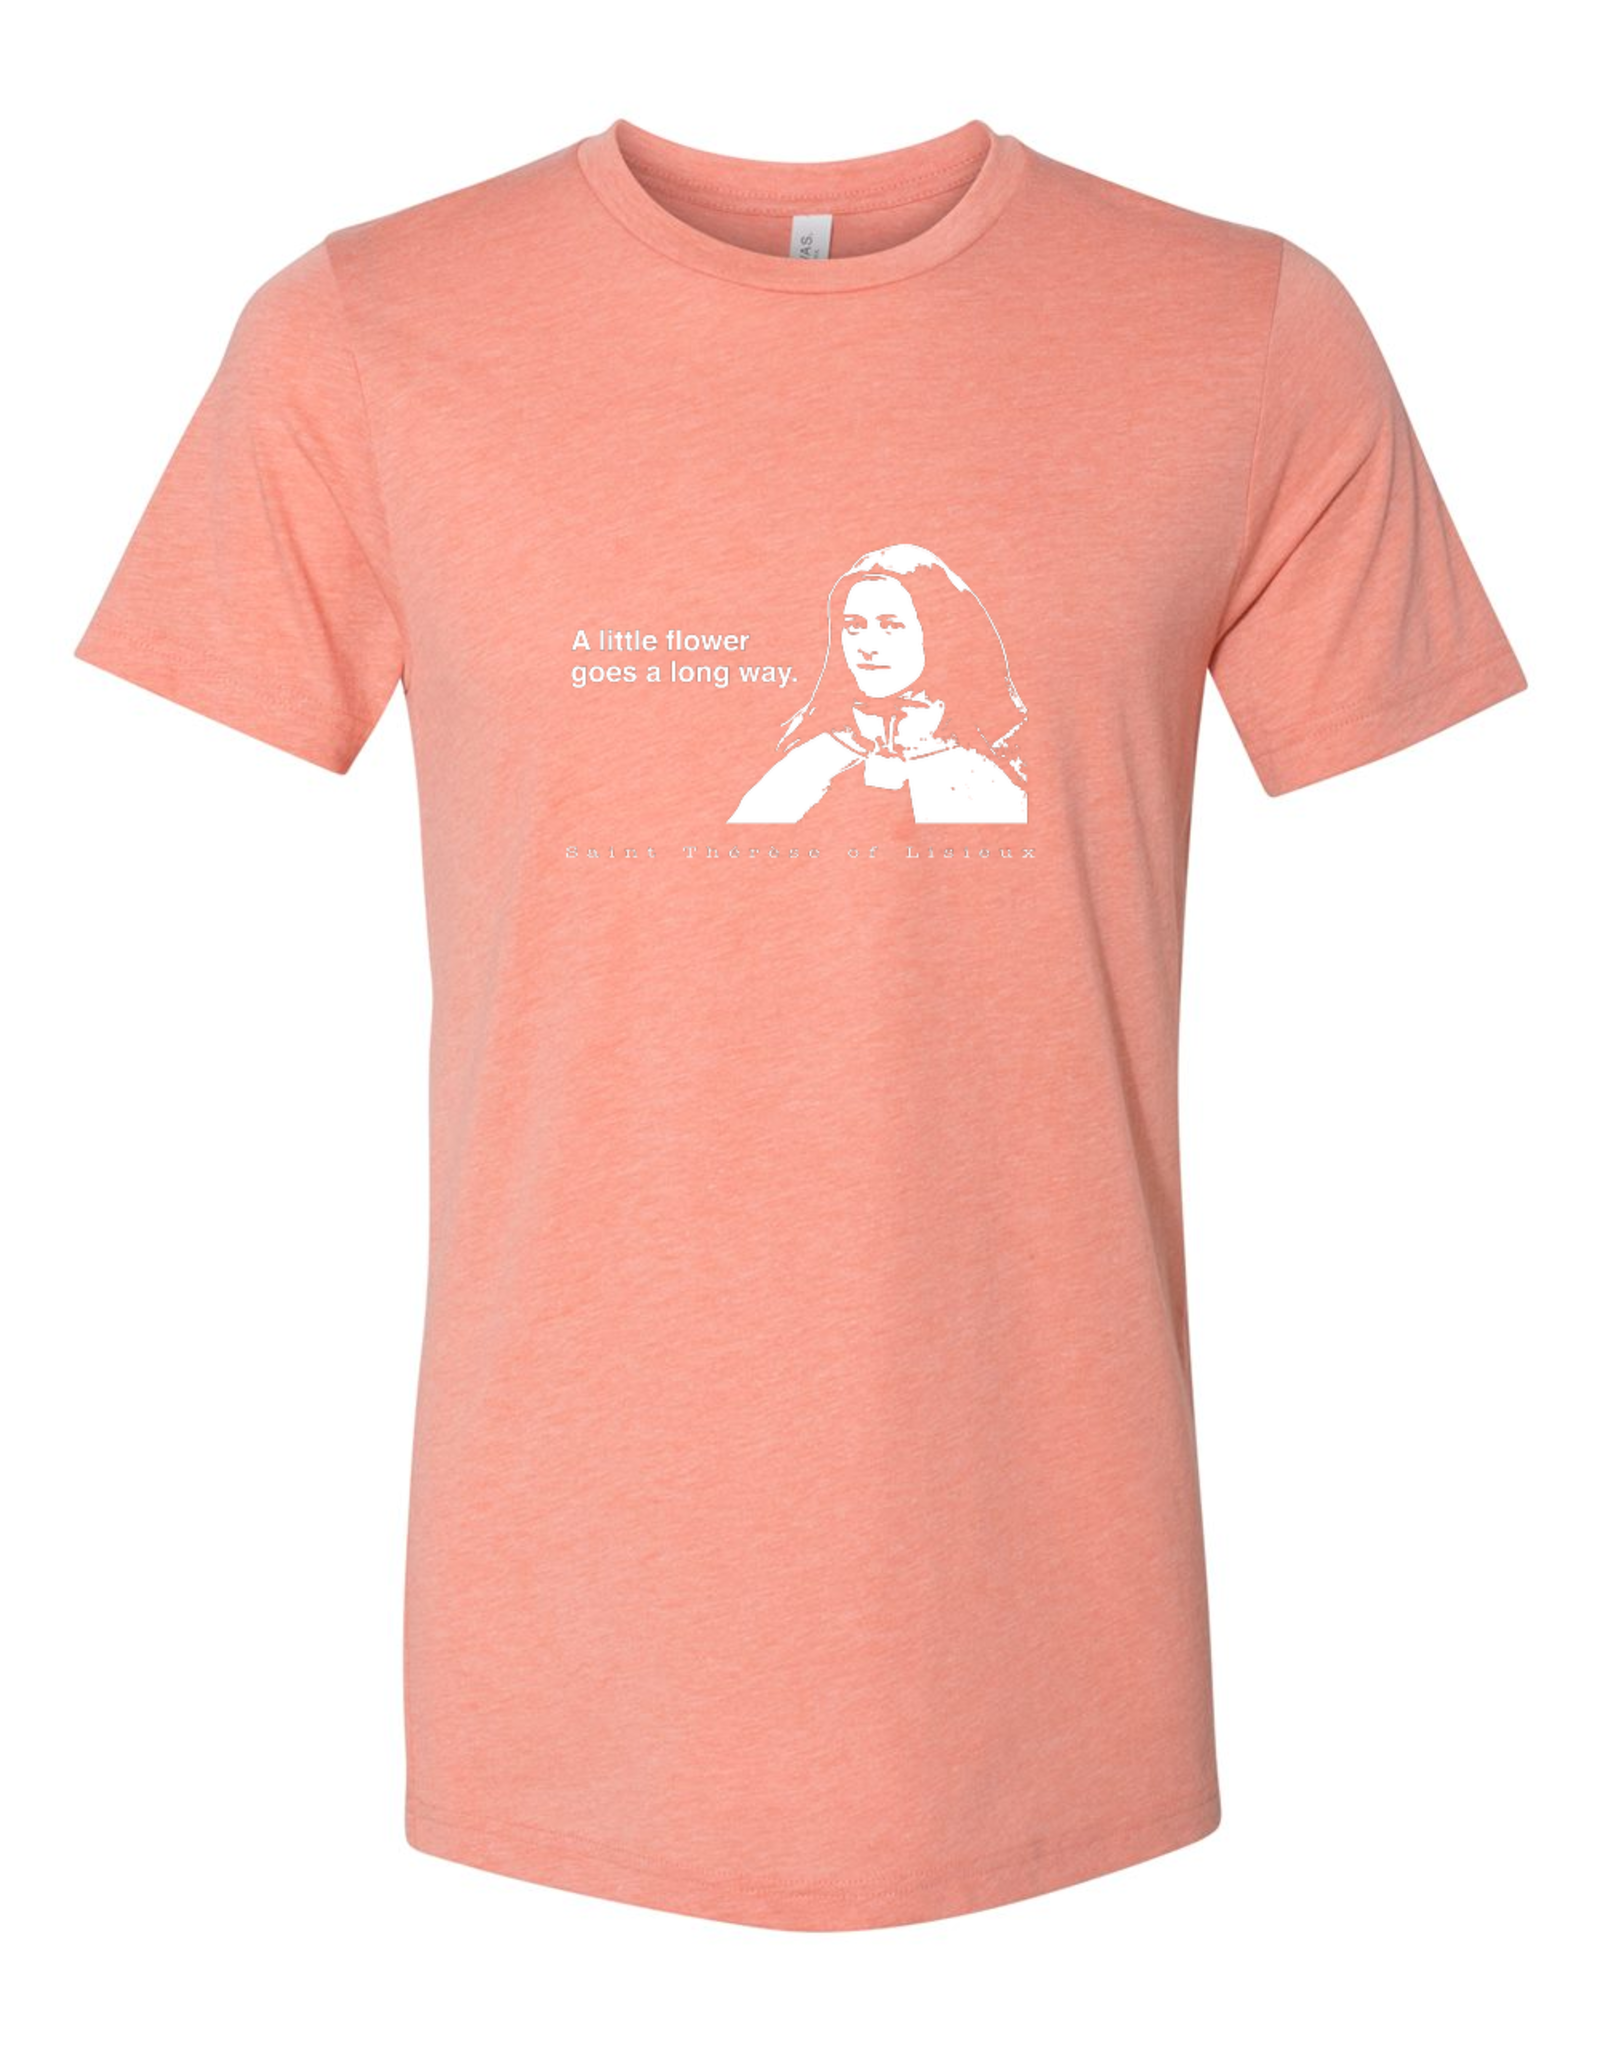 Sock Religious A Little Flower Goes a Long Way - St. Therese of Lisieux T Shirt